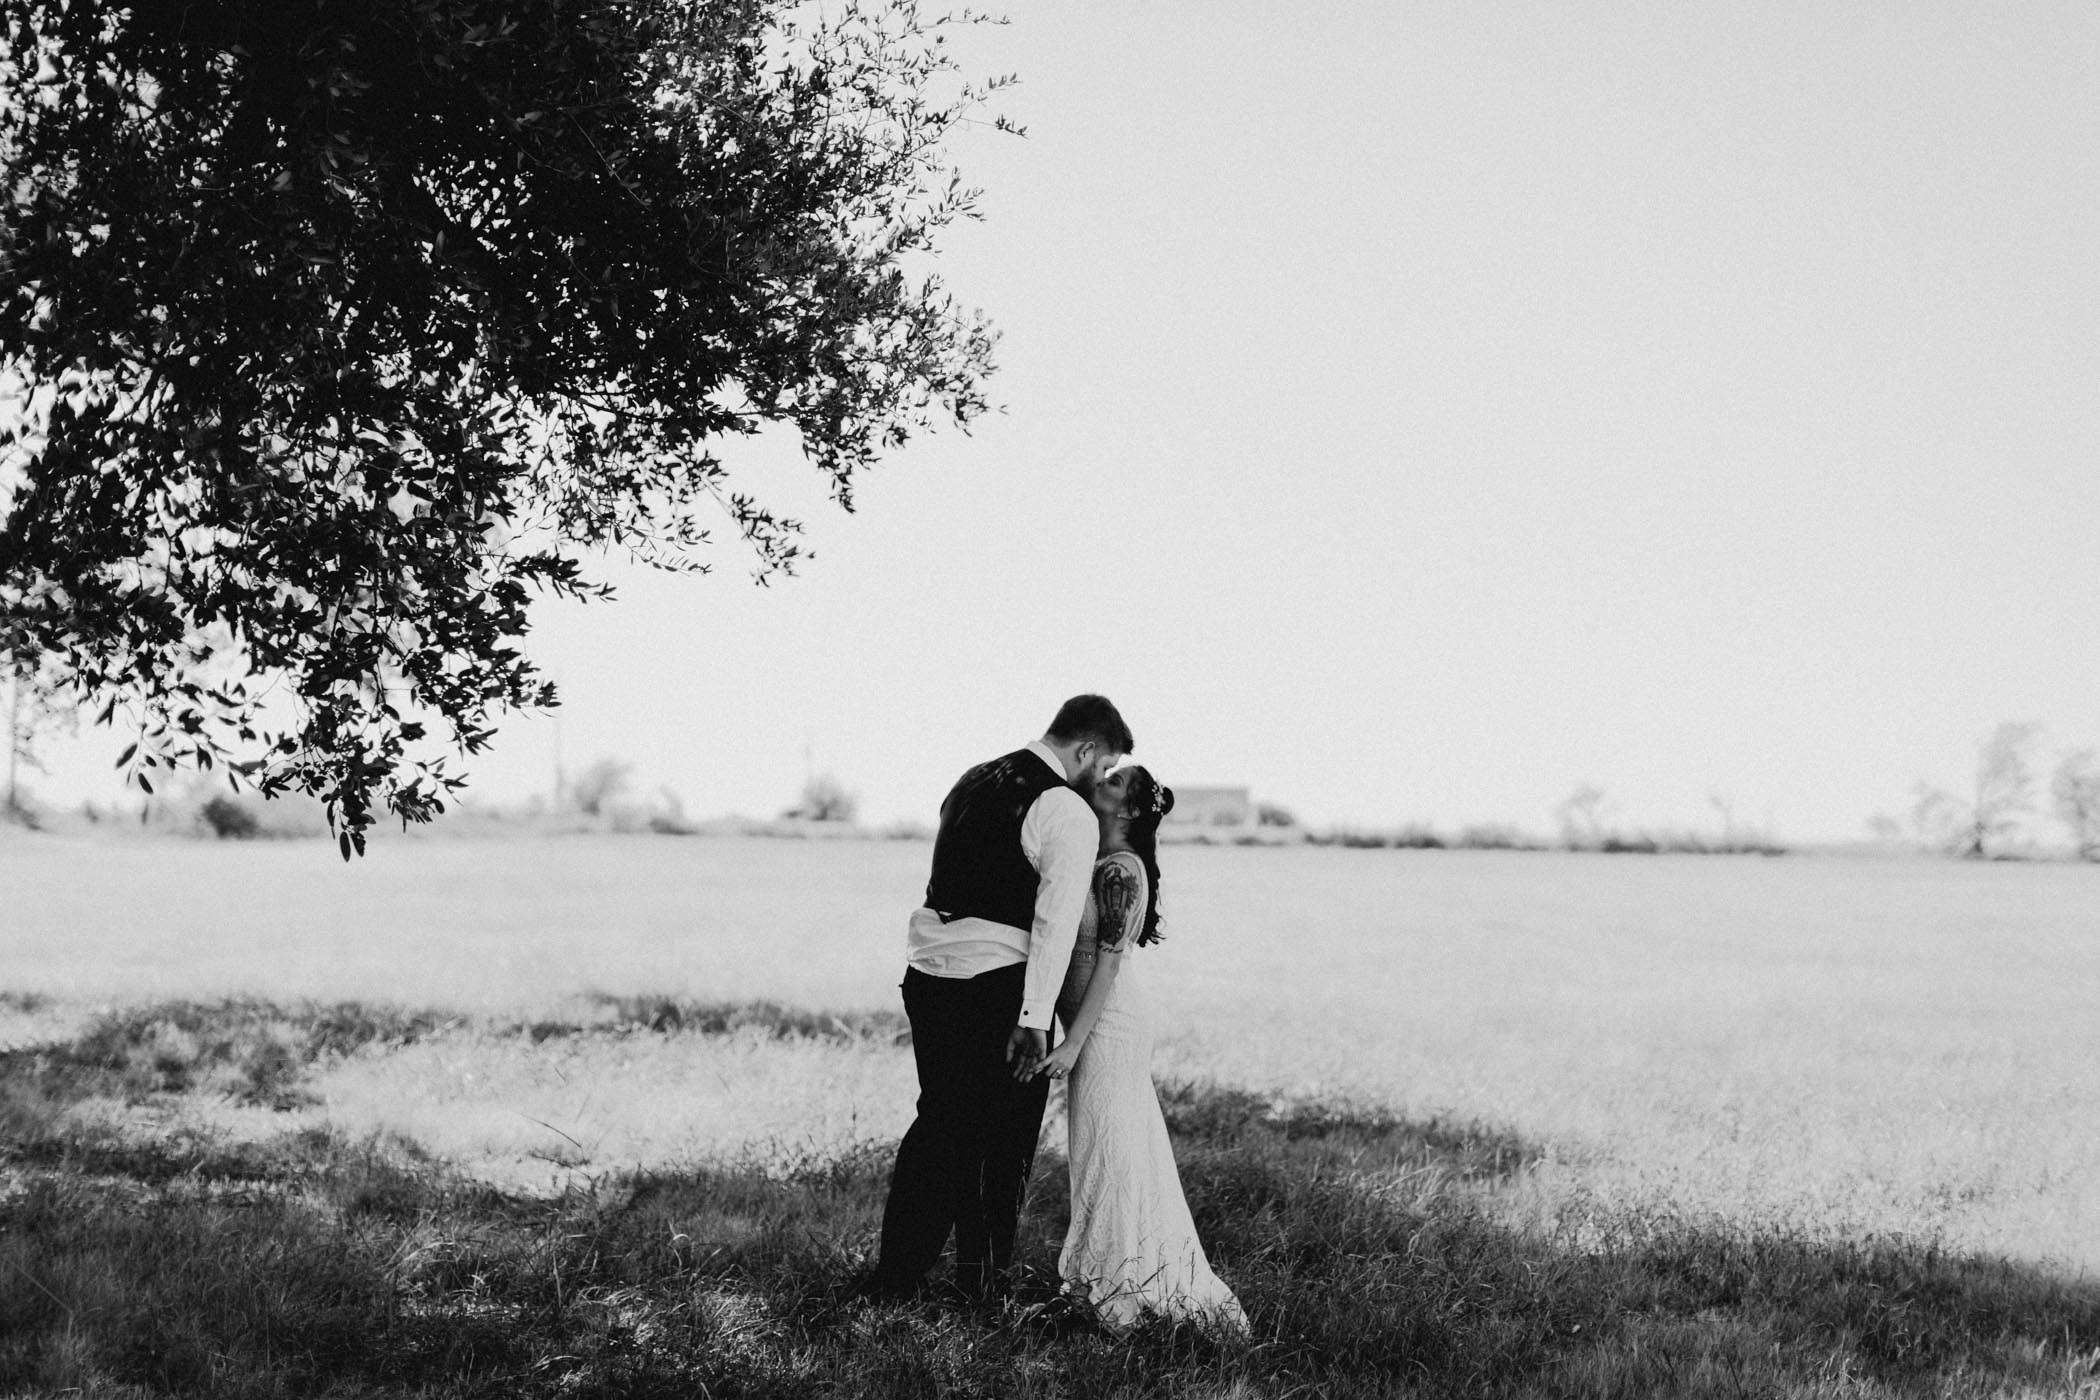 Black and white wedding photograph of bride and groom kissing in North Texas field